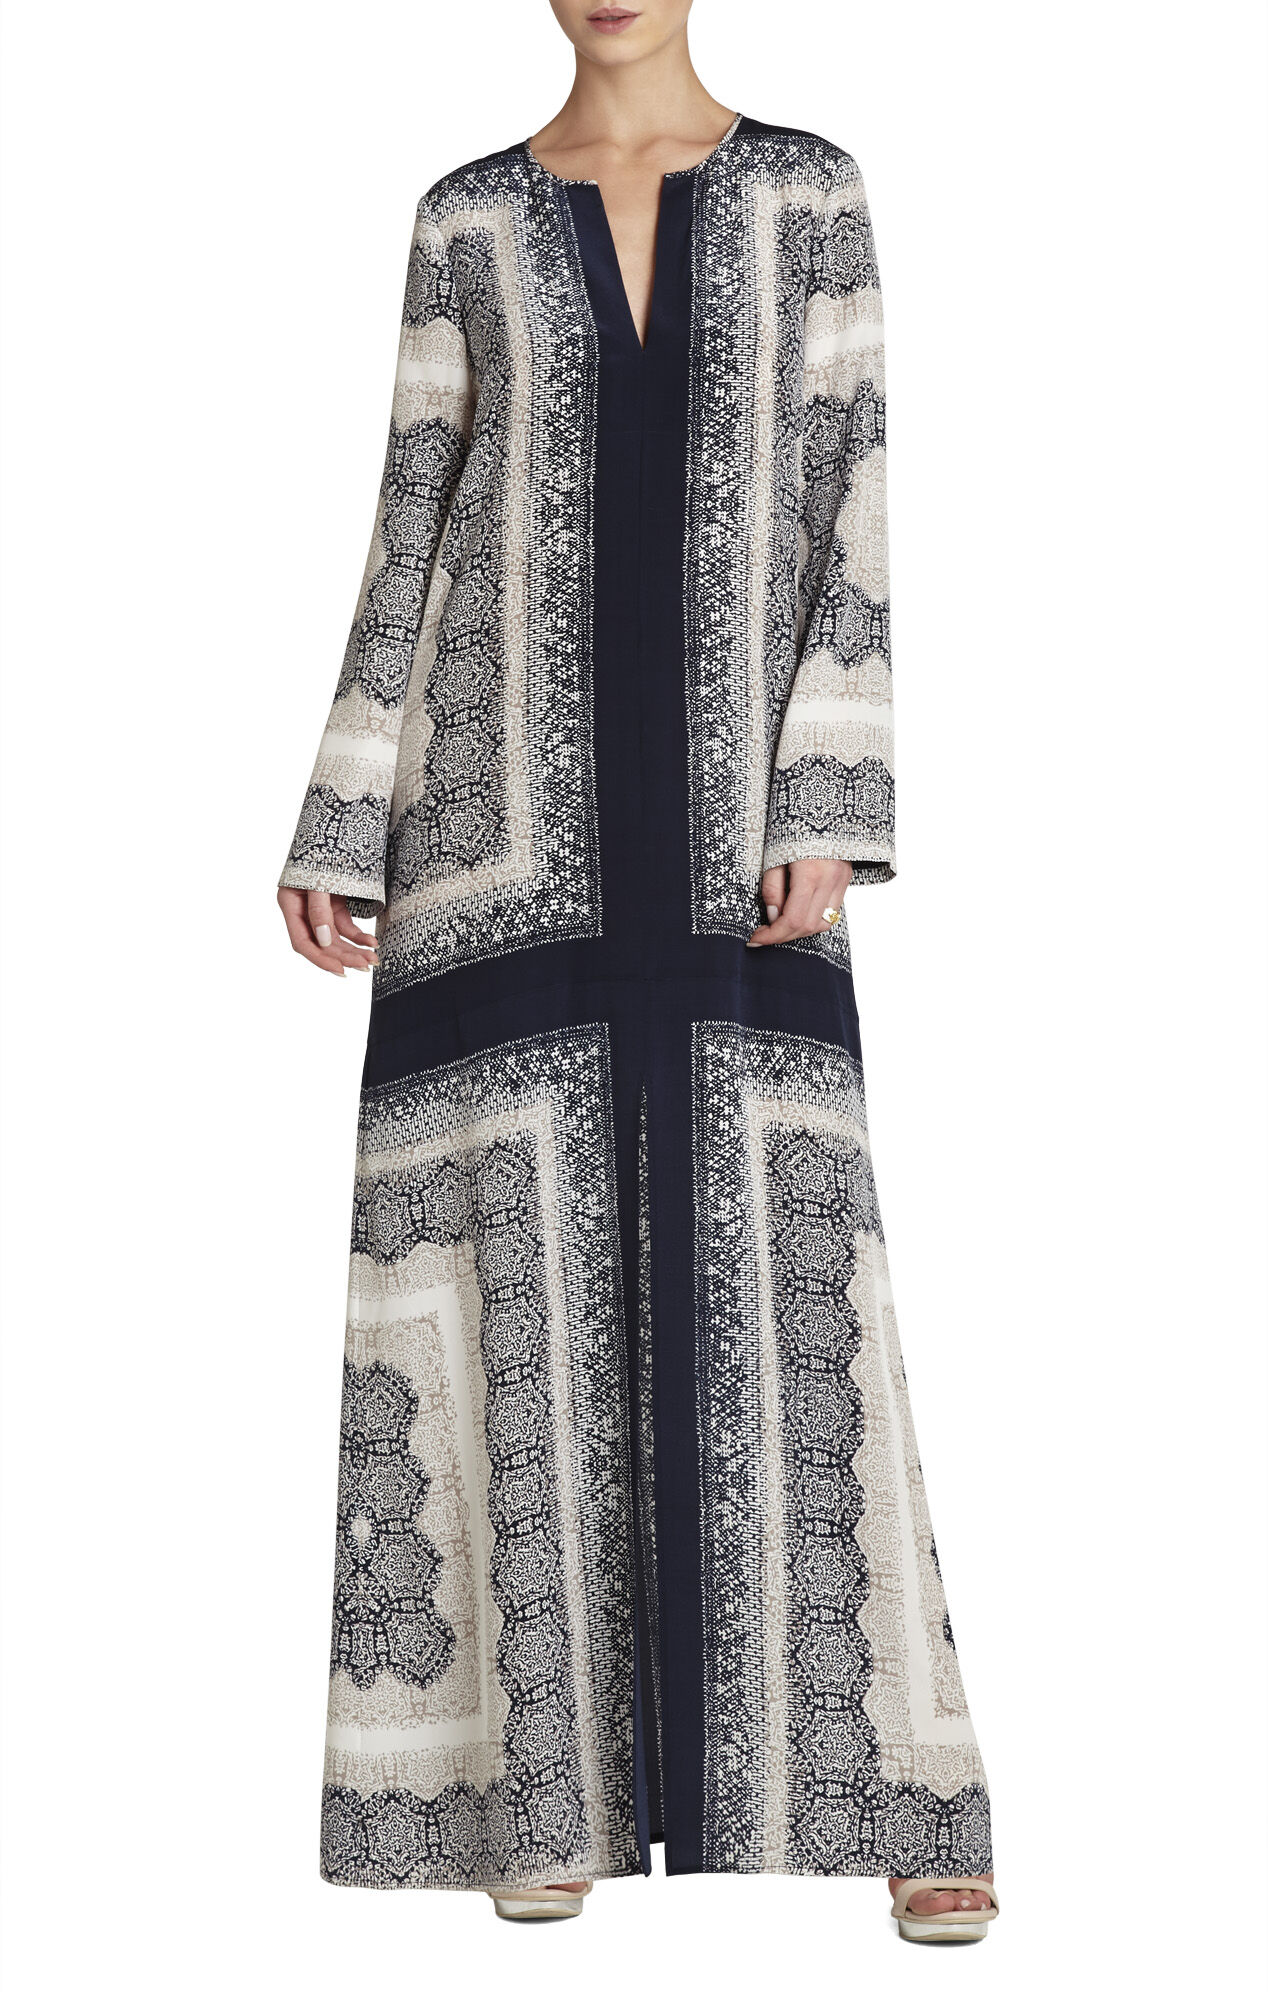 Olivia Scarf-Printed Caftan Dress